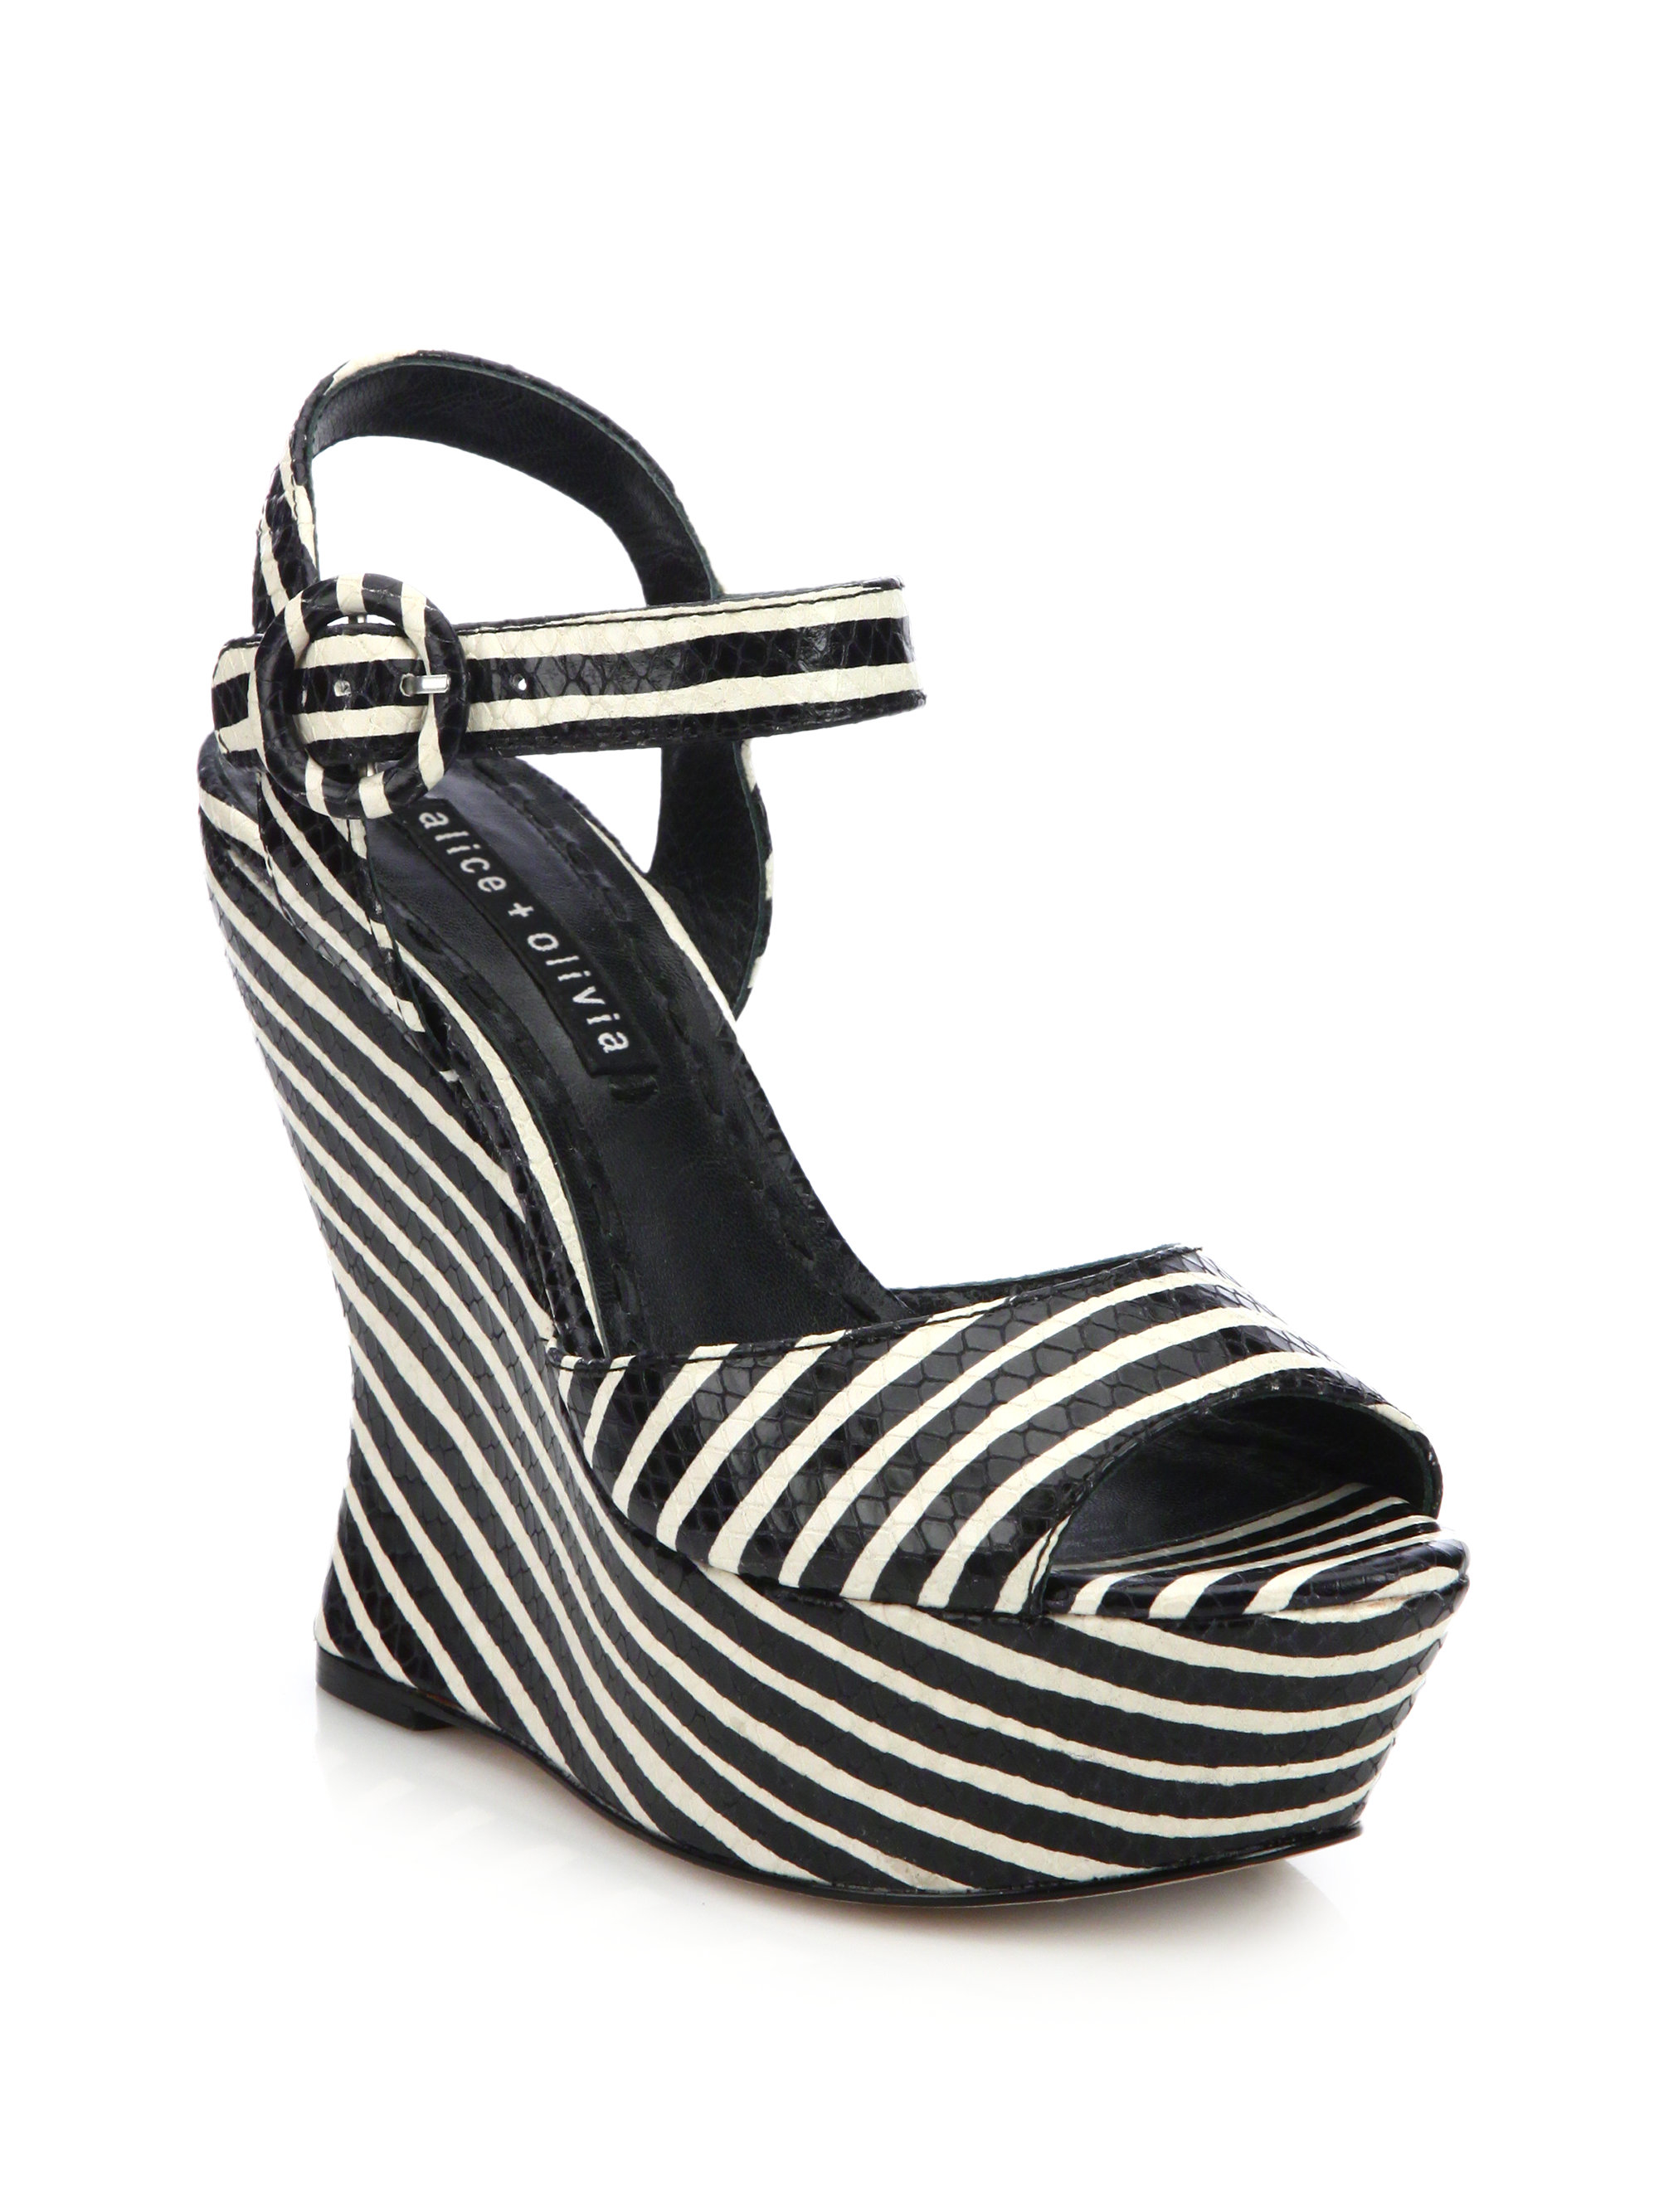 Alice + Olivia Leather Wedge Sandals amazing price online popular online visit cheap online pictures for sale lpPxfN